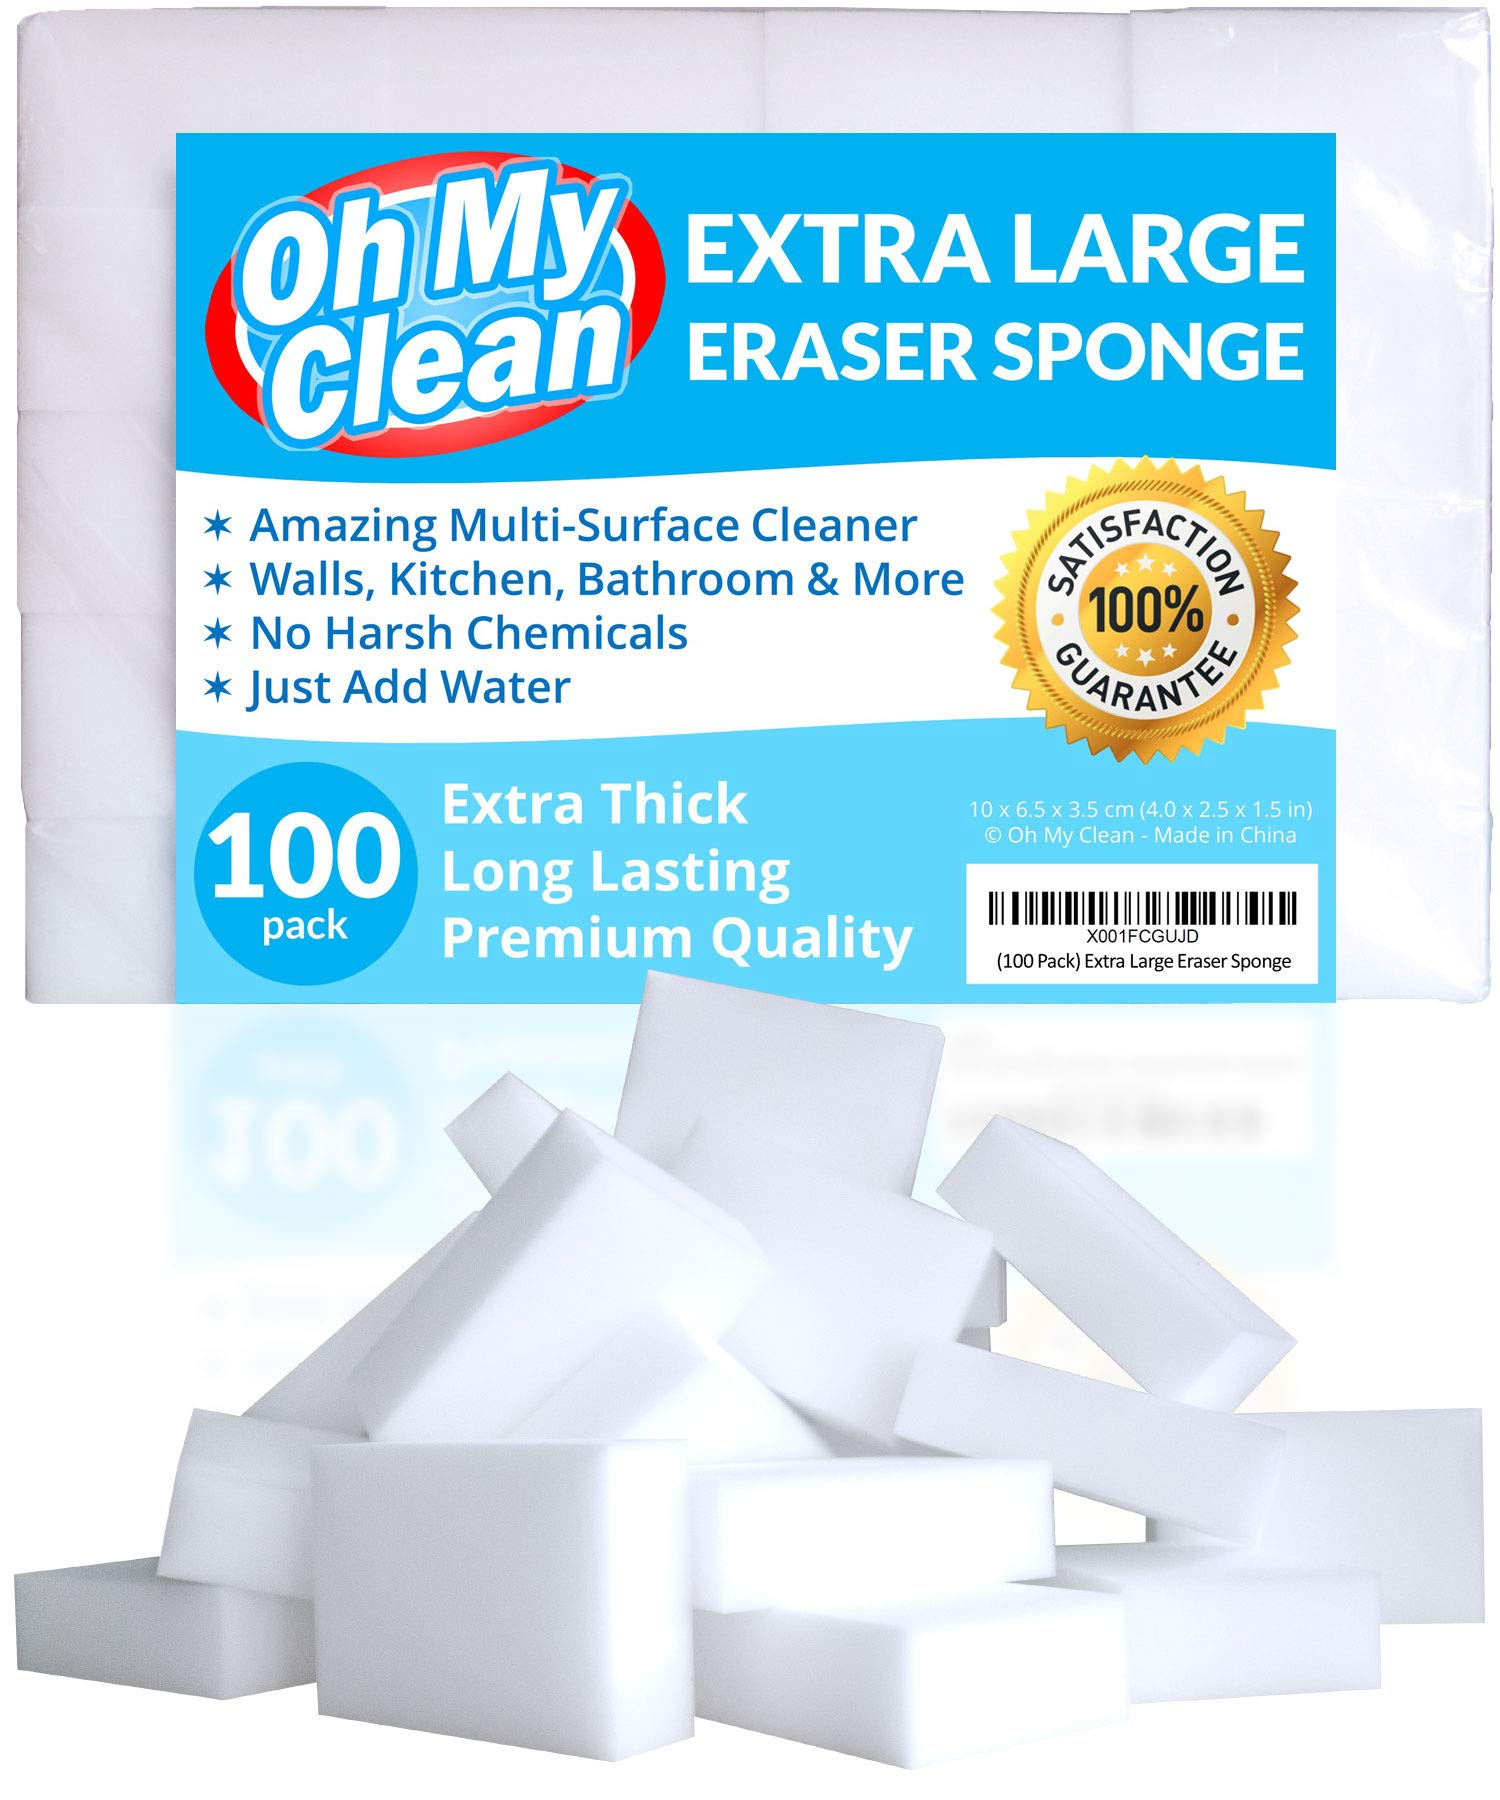 (100 Pack) Extra Large Eraser Sponge - Extra Thick, Long Lasting, Premium Melamine Sponges in Bulk - Multi Surface Power Scrubber Foam Cleaning Pads - Bathtub, Floor, Baseboard, Bathroom, Wall Cleaner by Oh My Clean